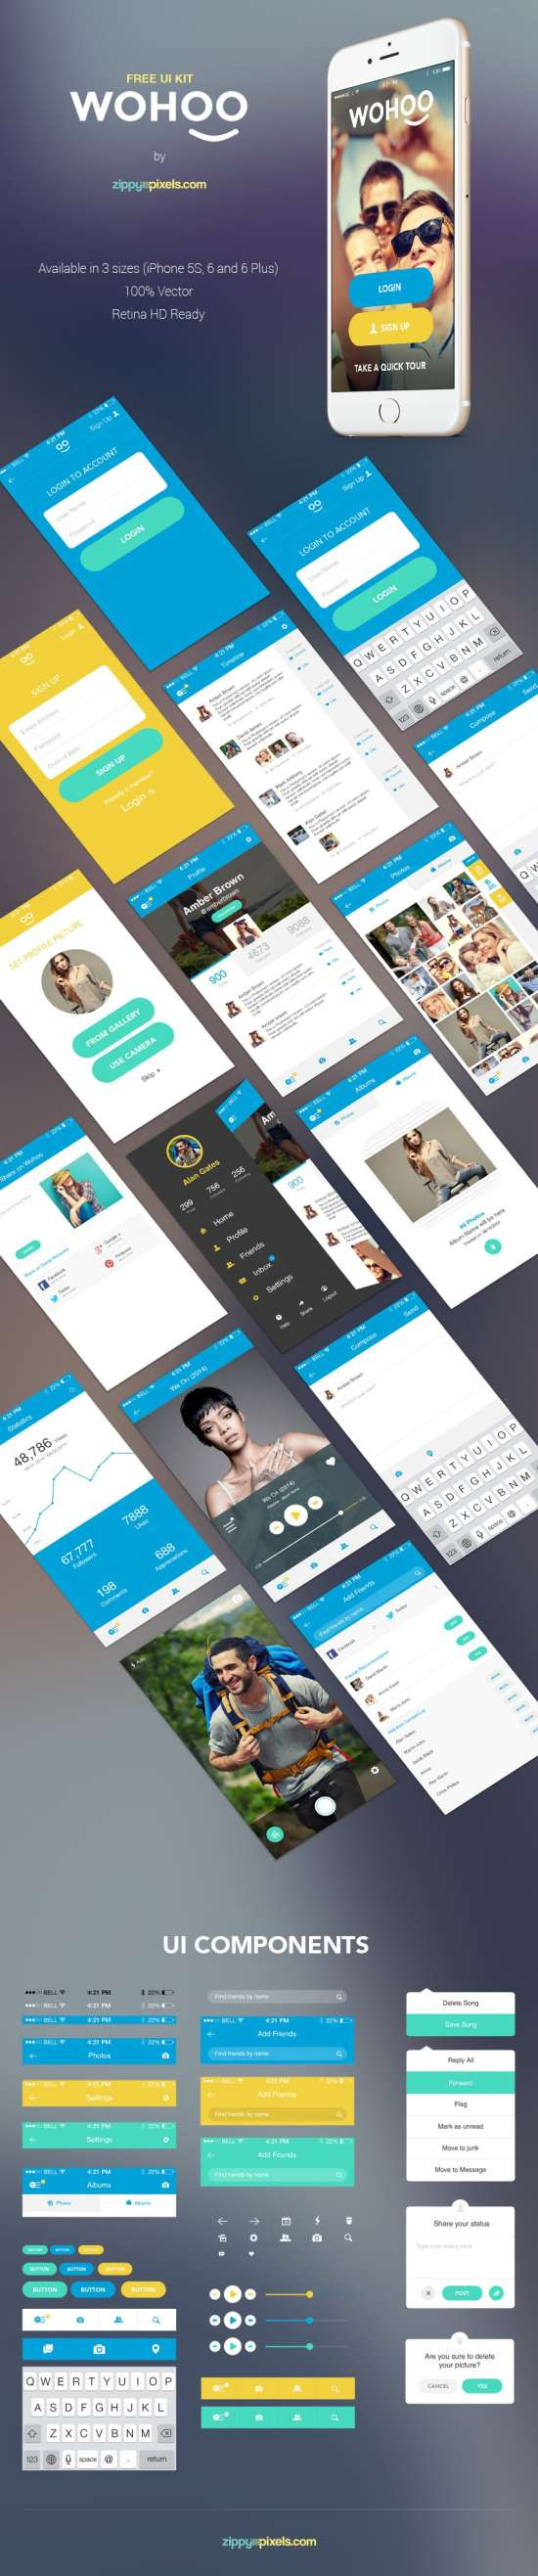 wohoo_free_mobile_app_ui_kit